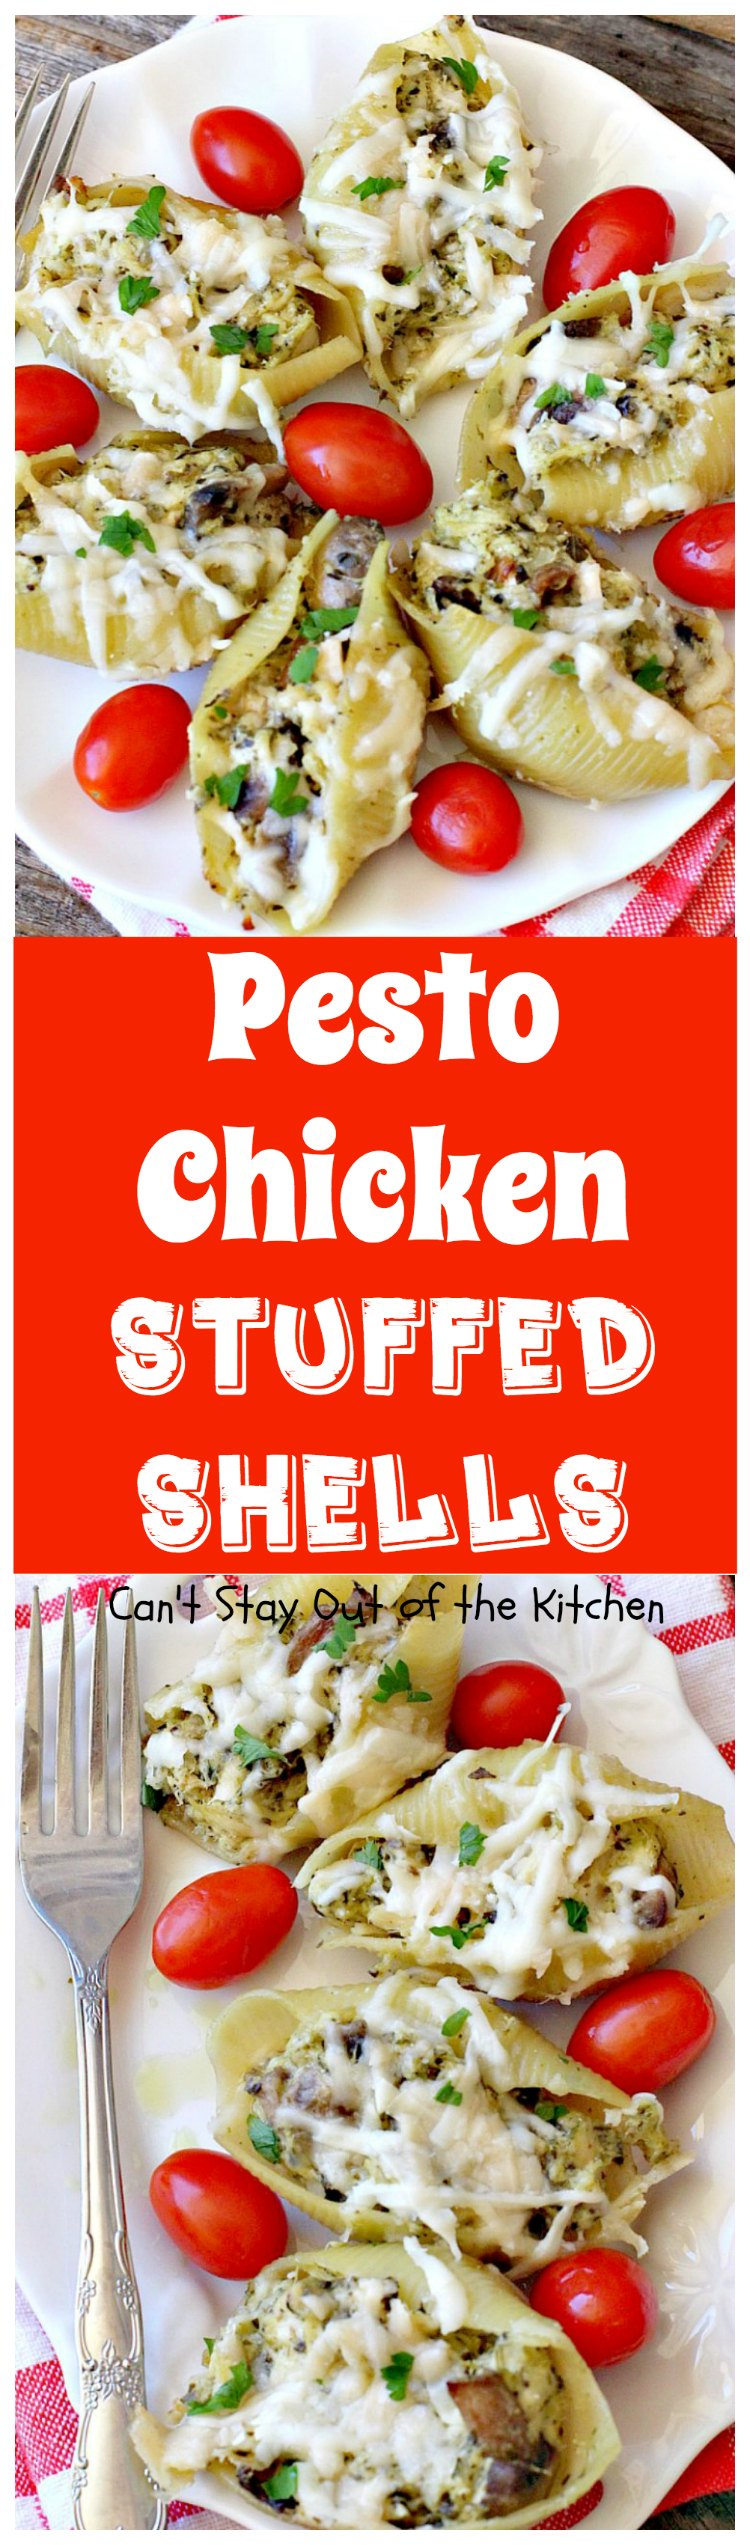 Pesto Chicken Stuffed Shells | Can't Stay Out of the Kitchen